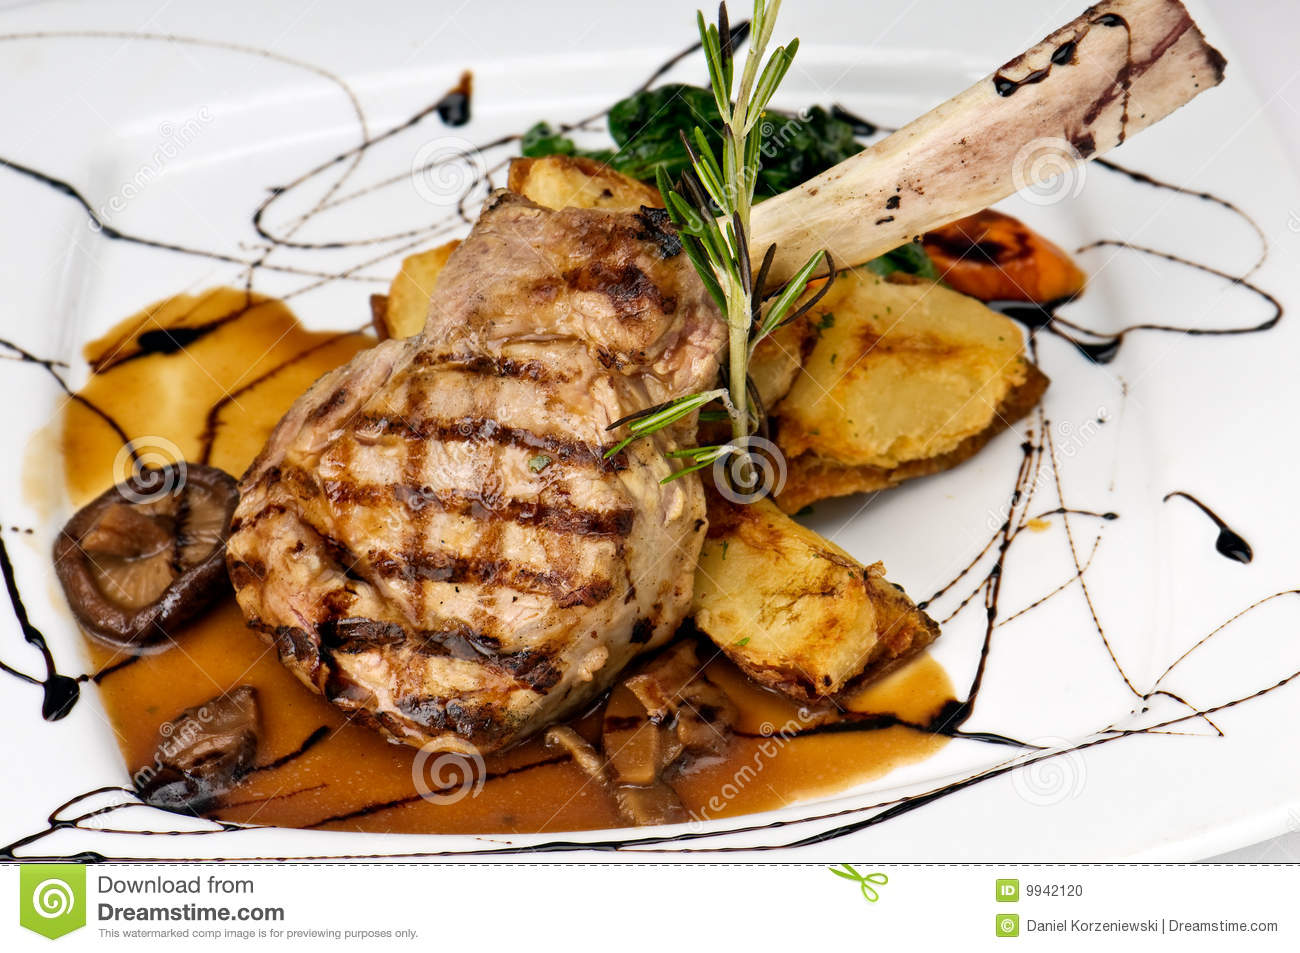 Turf N Surf >> Broiled Center Cut Veal Chop Stock Photo - Image: 9942120